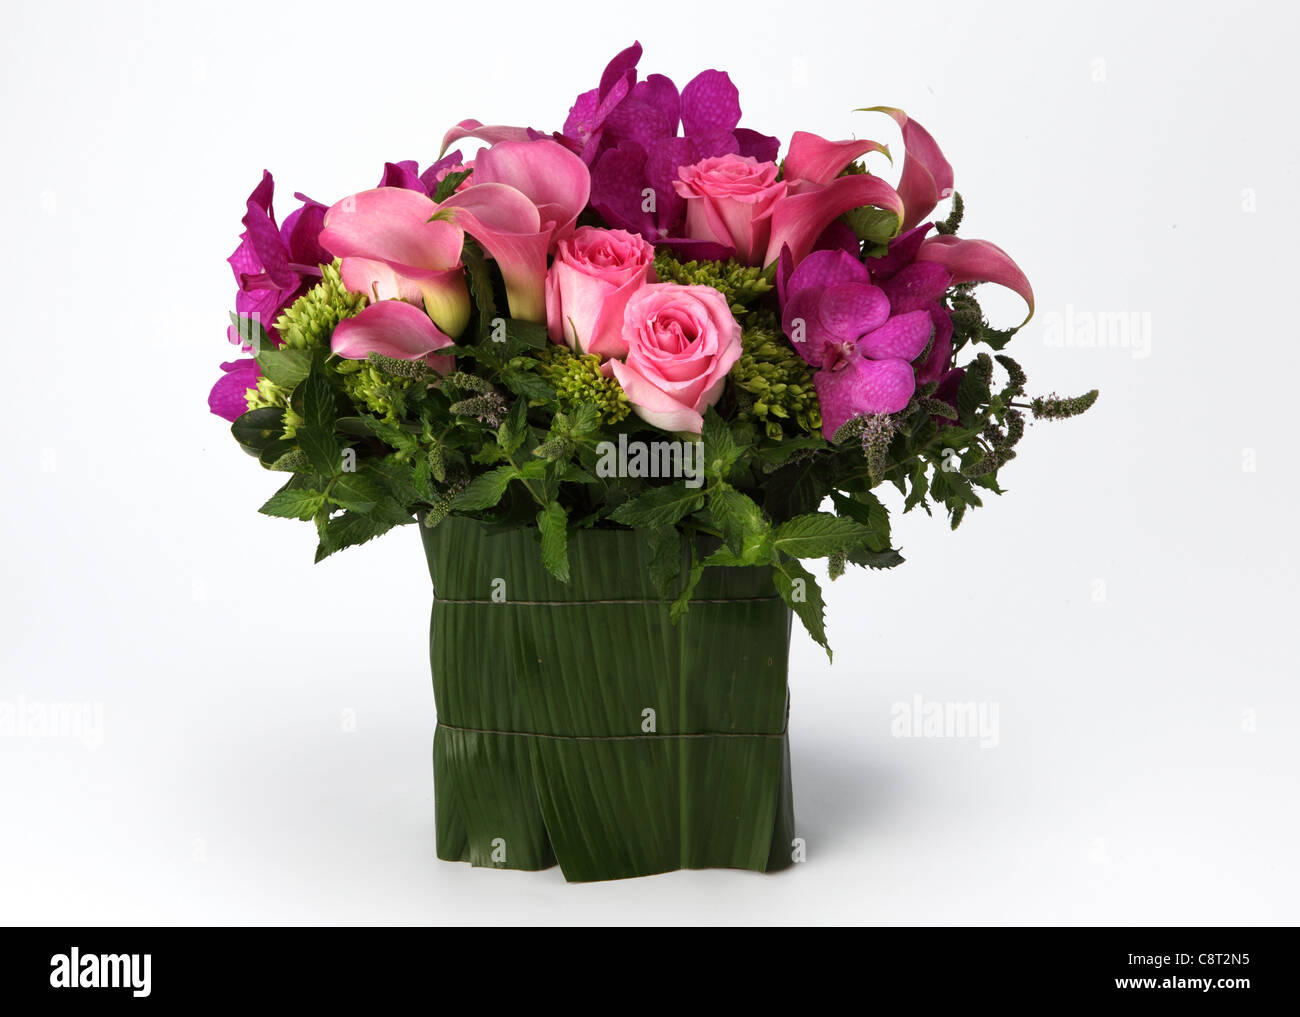 A Colorful Bouquet Of Flowers In A Vase Pink Roses Red Callas